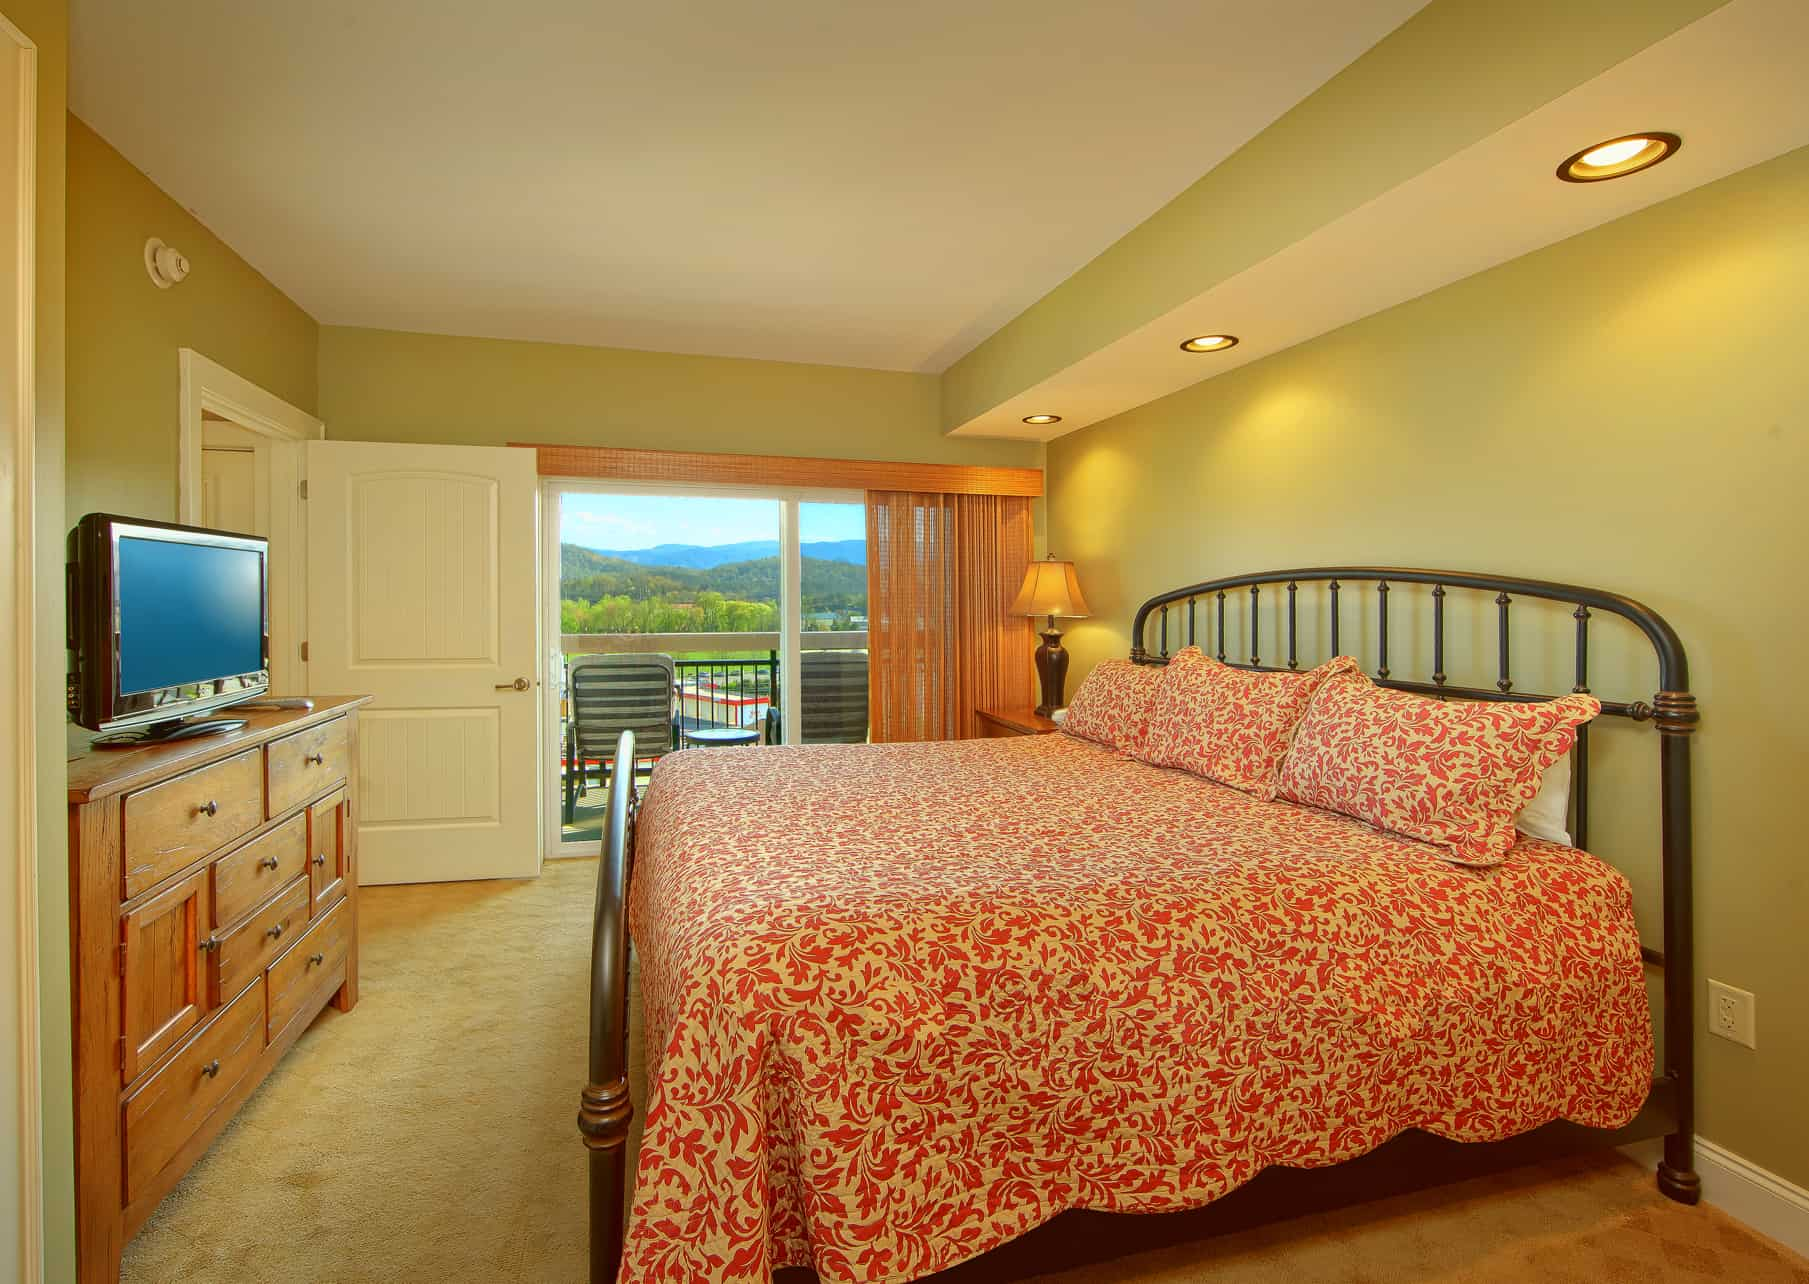 The bedroom of a luxury condo rental in Pigeon Forge with mountain views